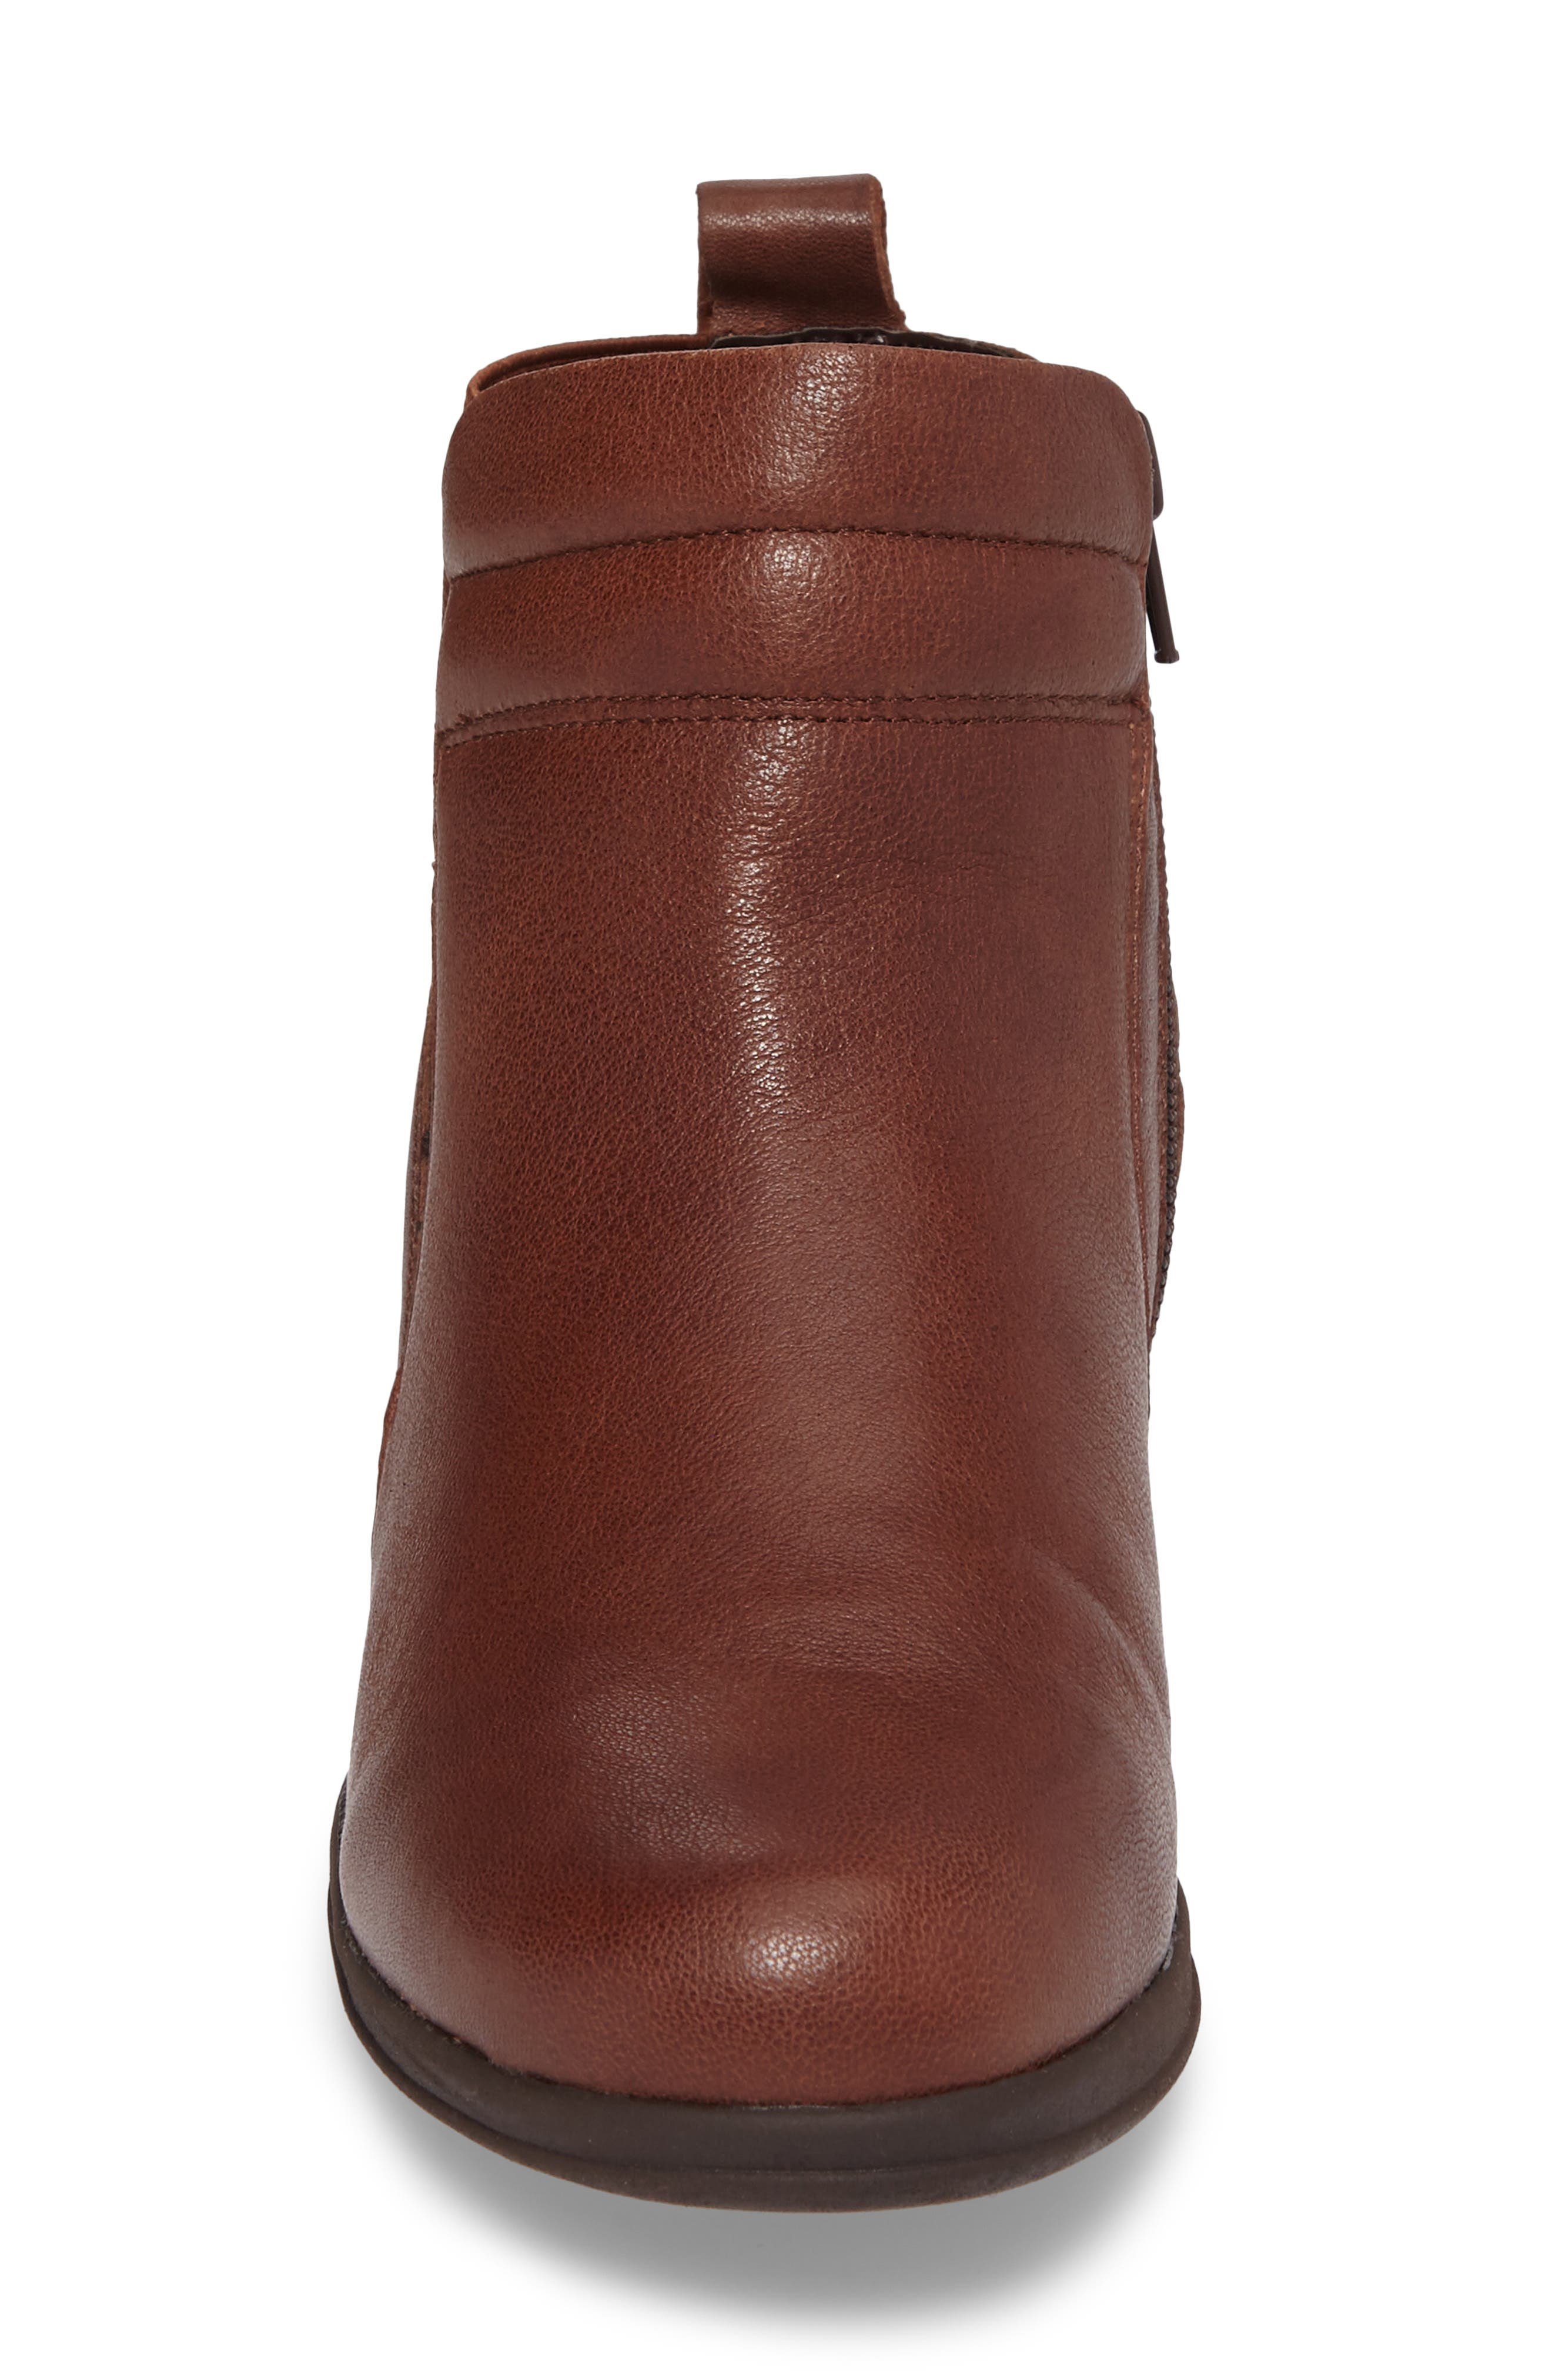 Cactus Bootie,                             Alternate thumbnail 4, color,                             Brown Leather